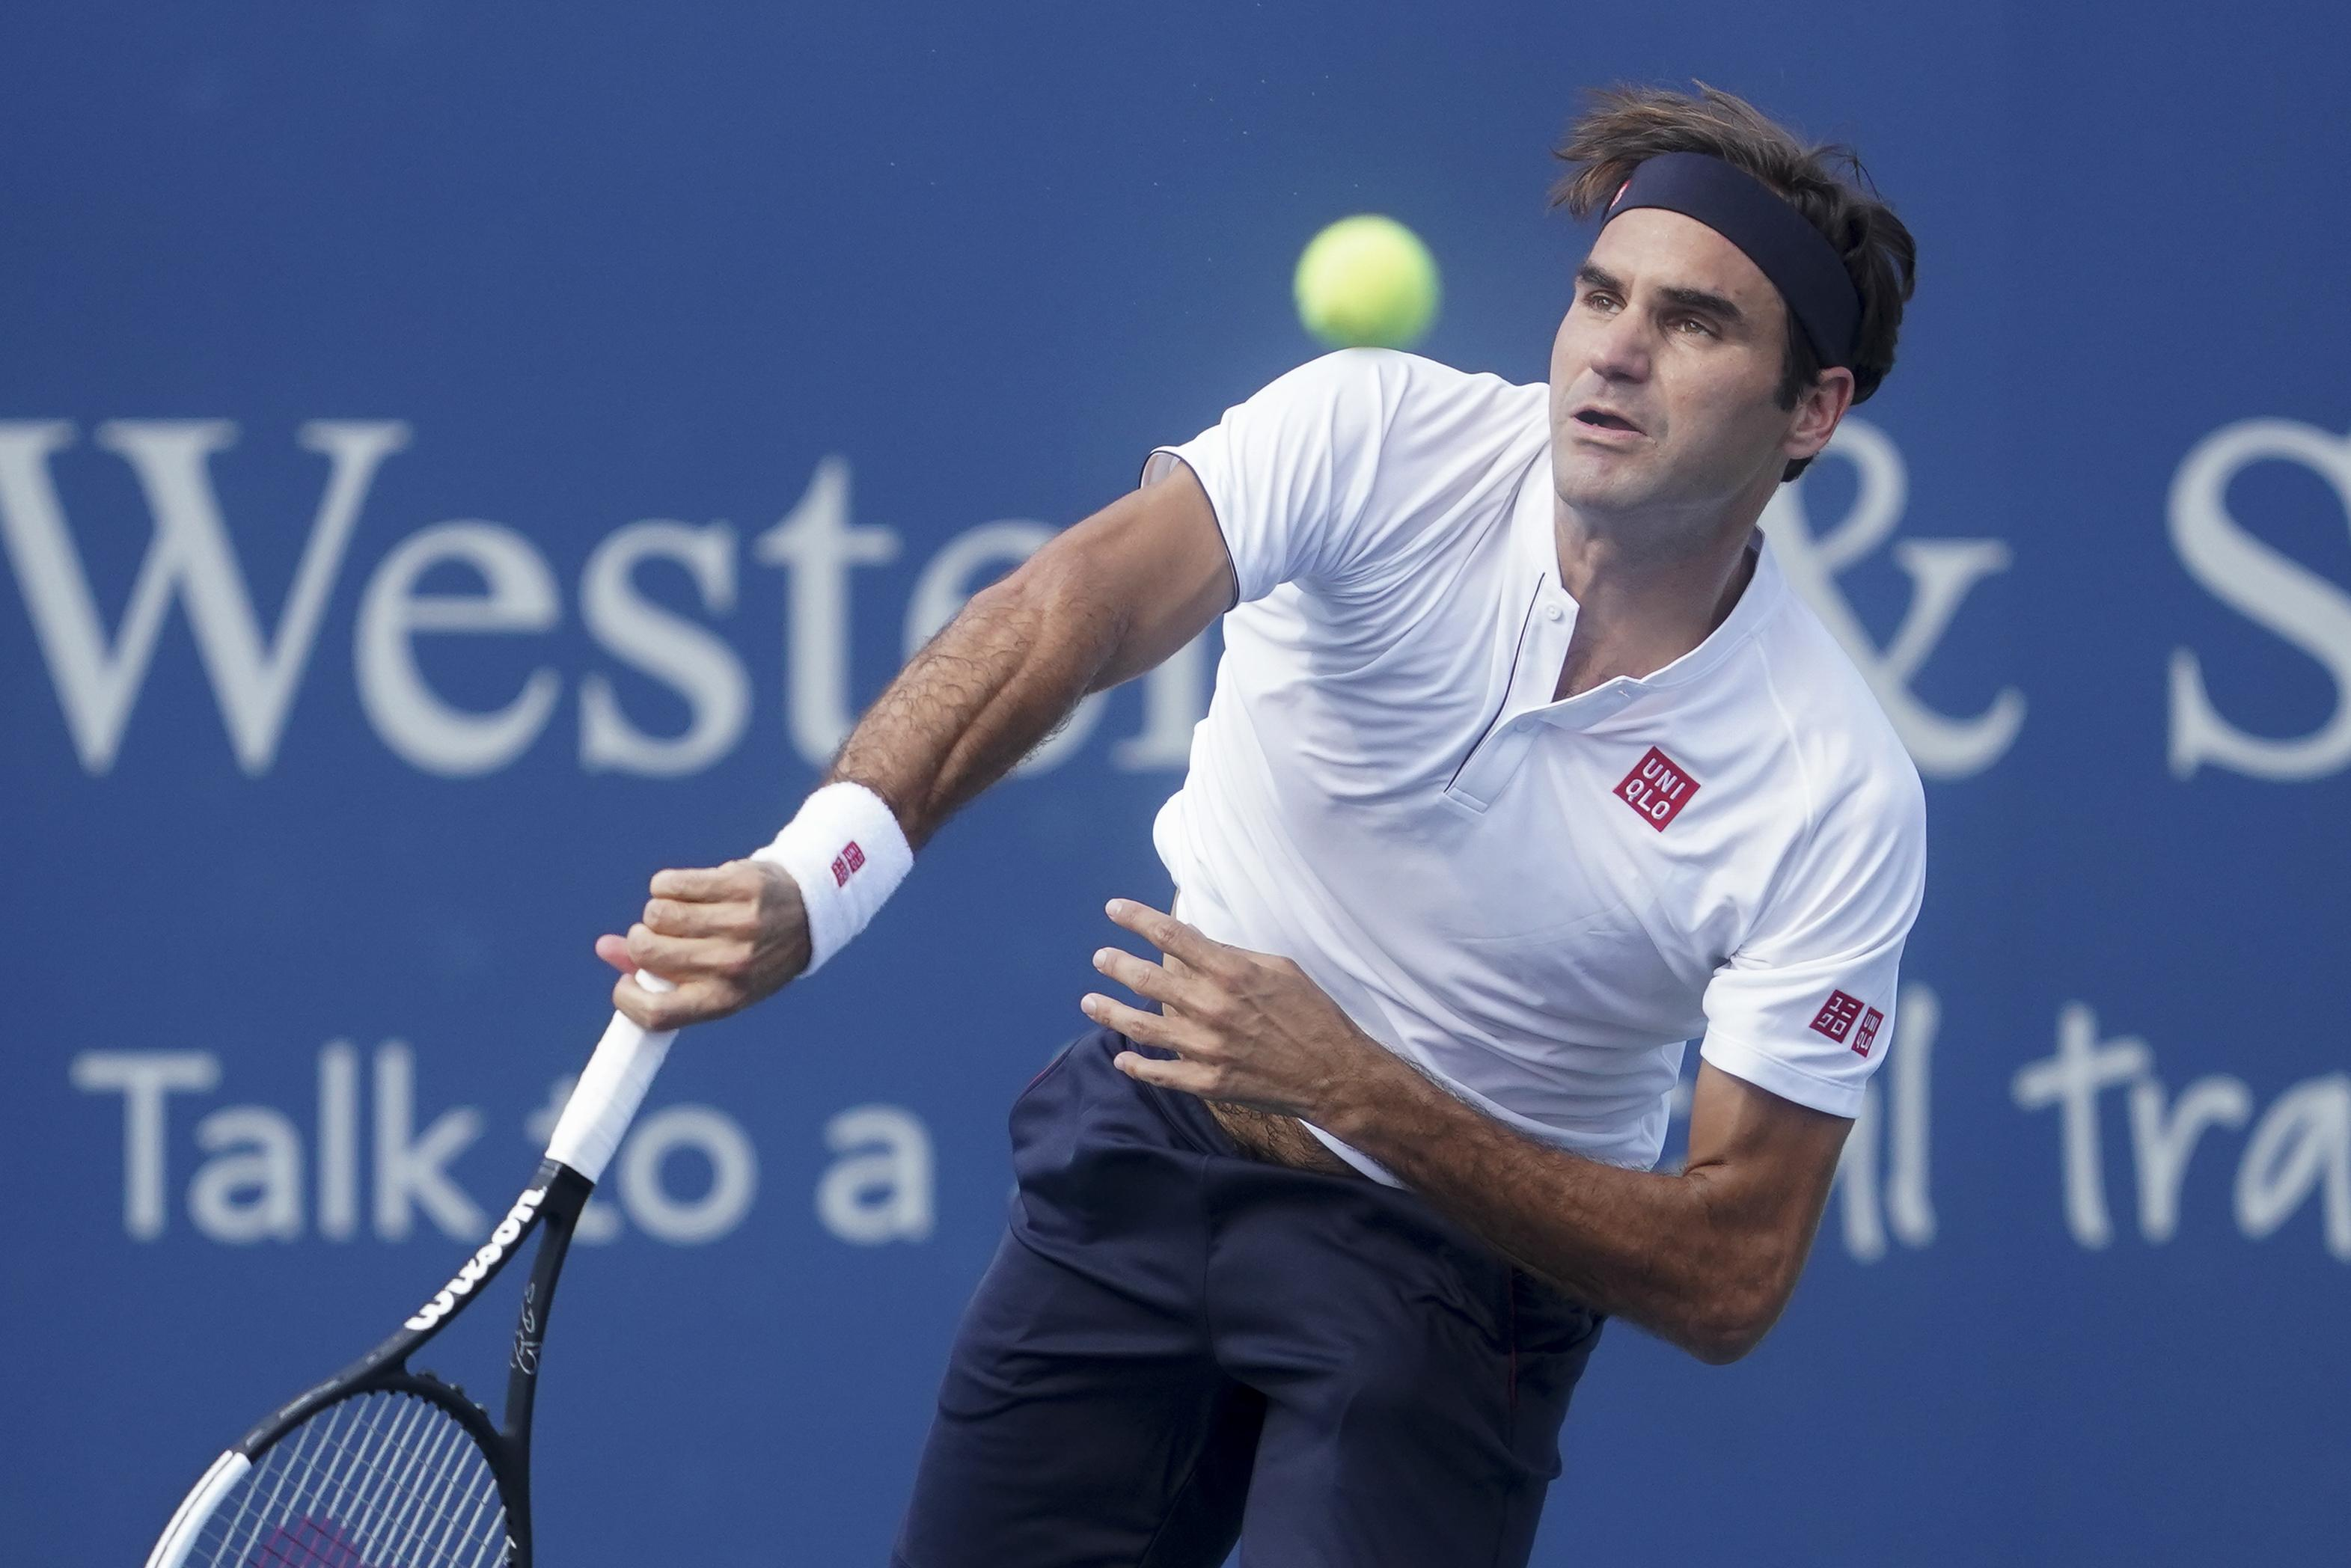 Federer could not consolidate the break as he continued to struggle to find his best tennis